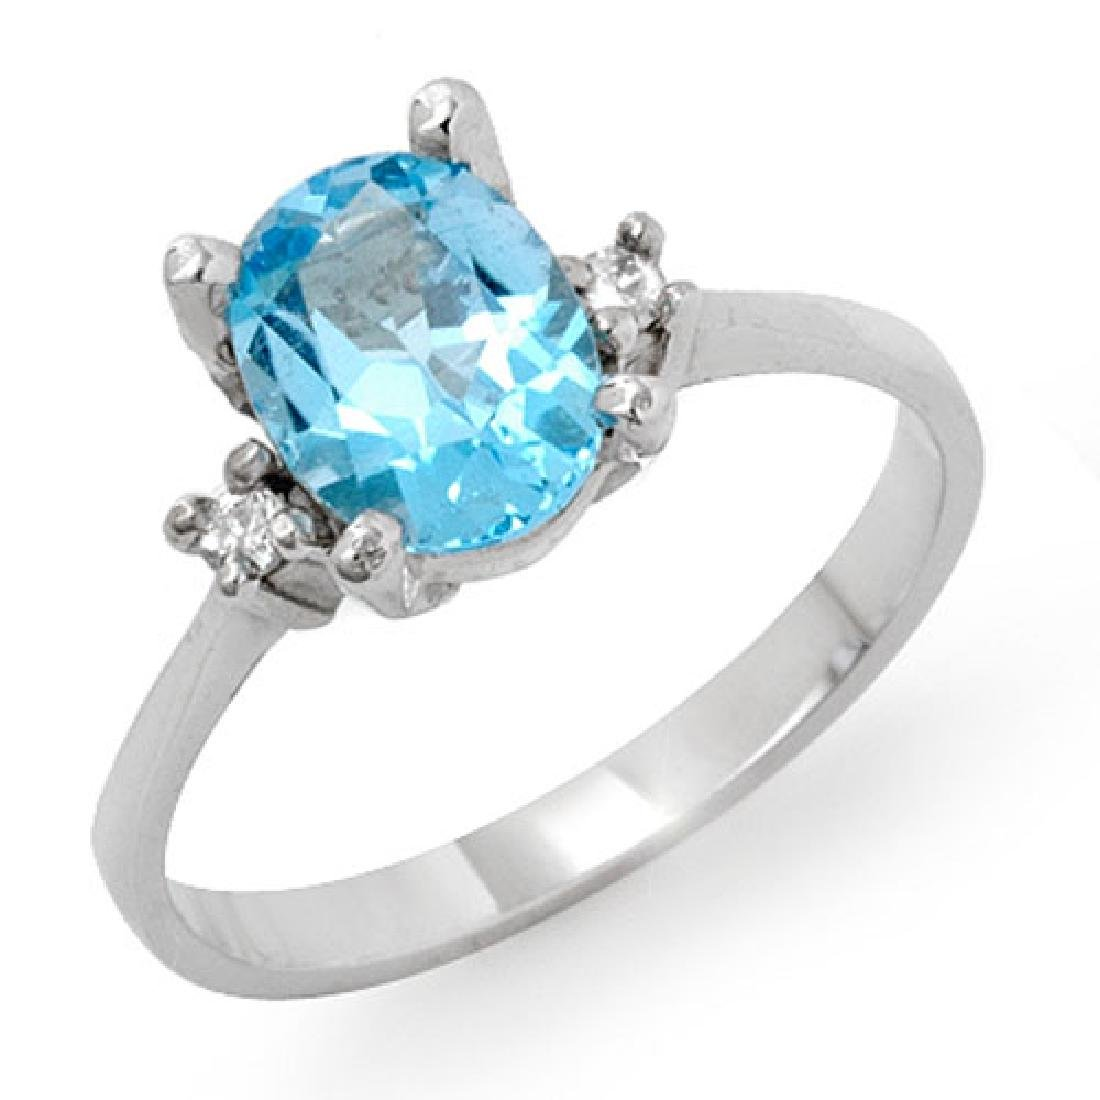 1.53 CTW Blue Topaz & Diamond Ring 18K White Gold